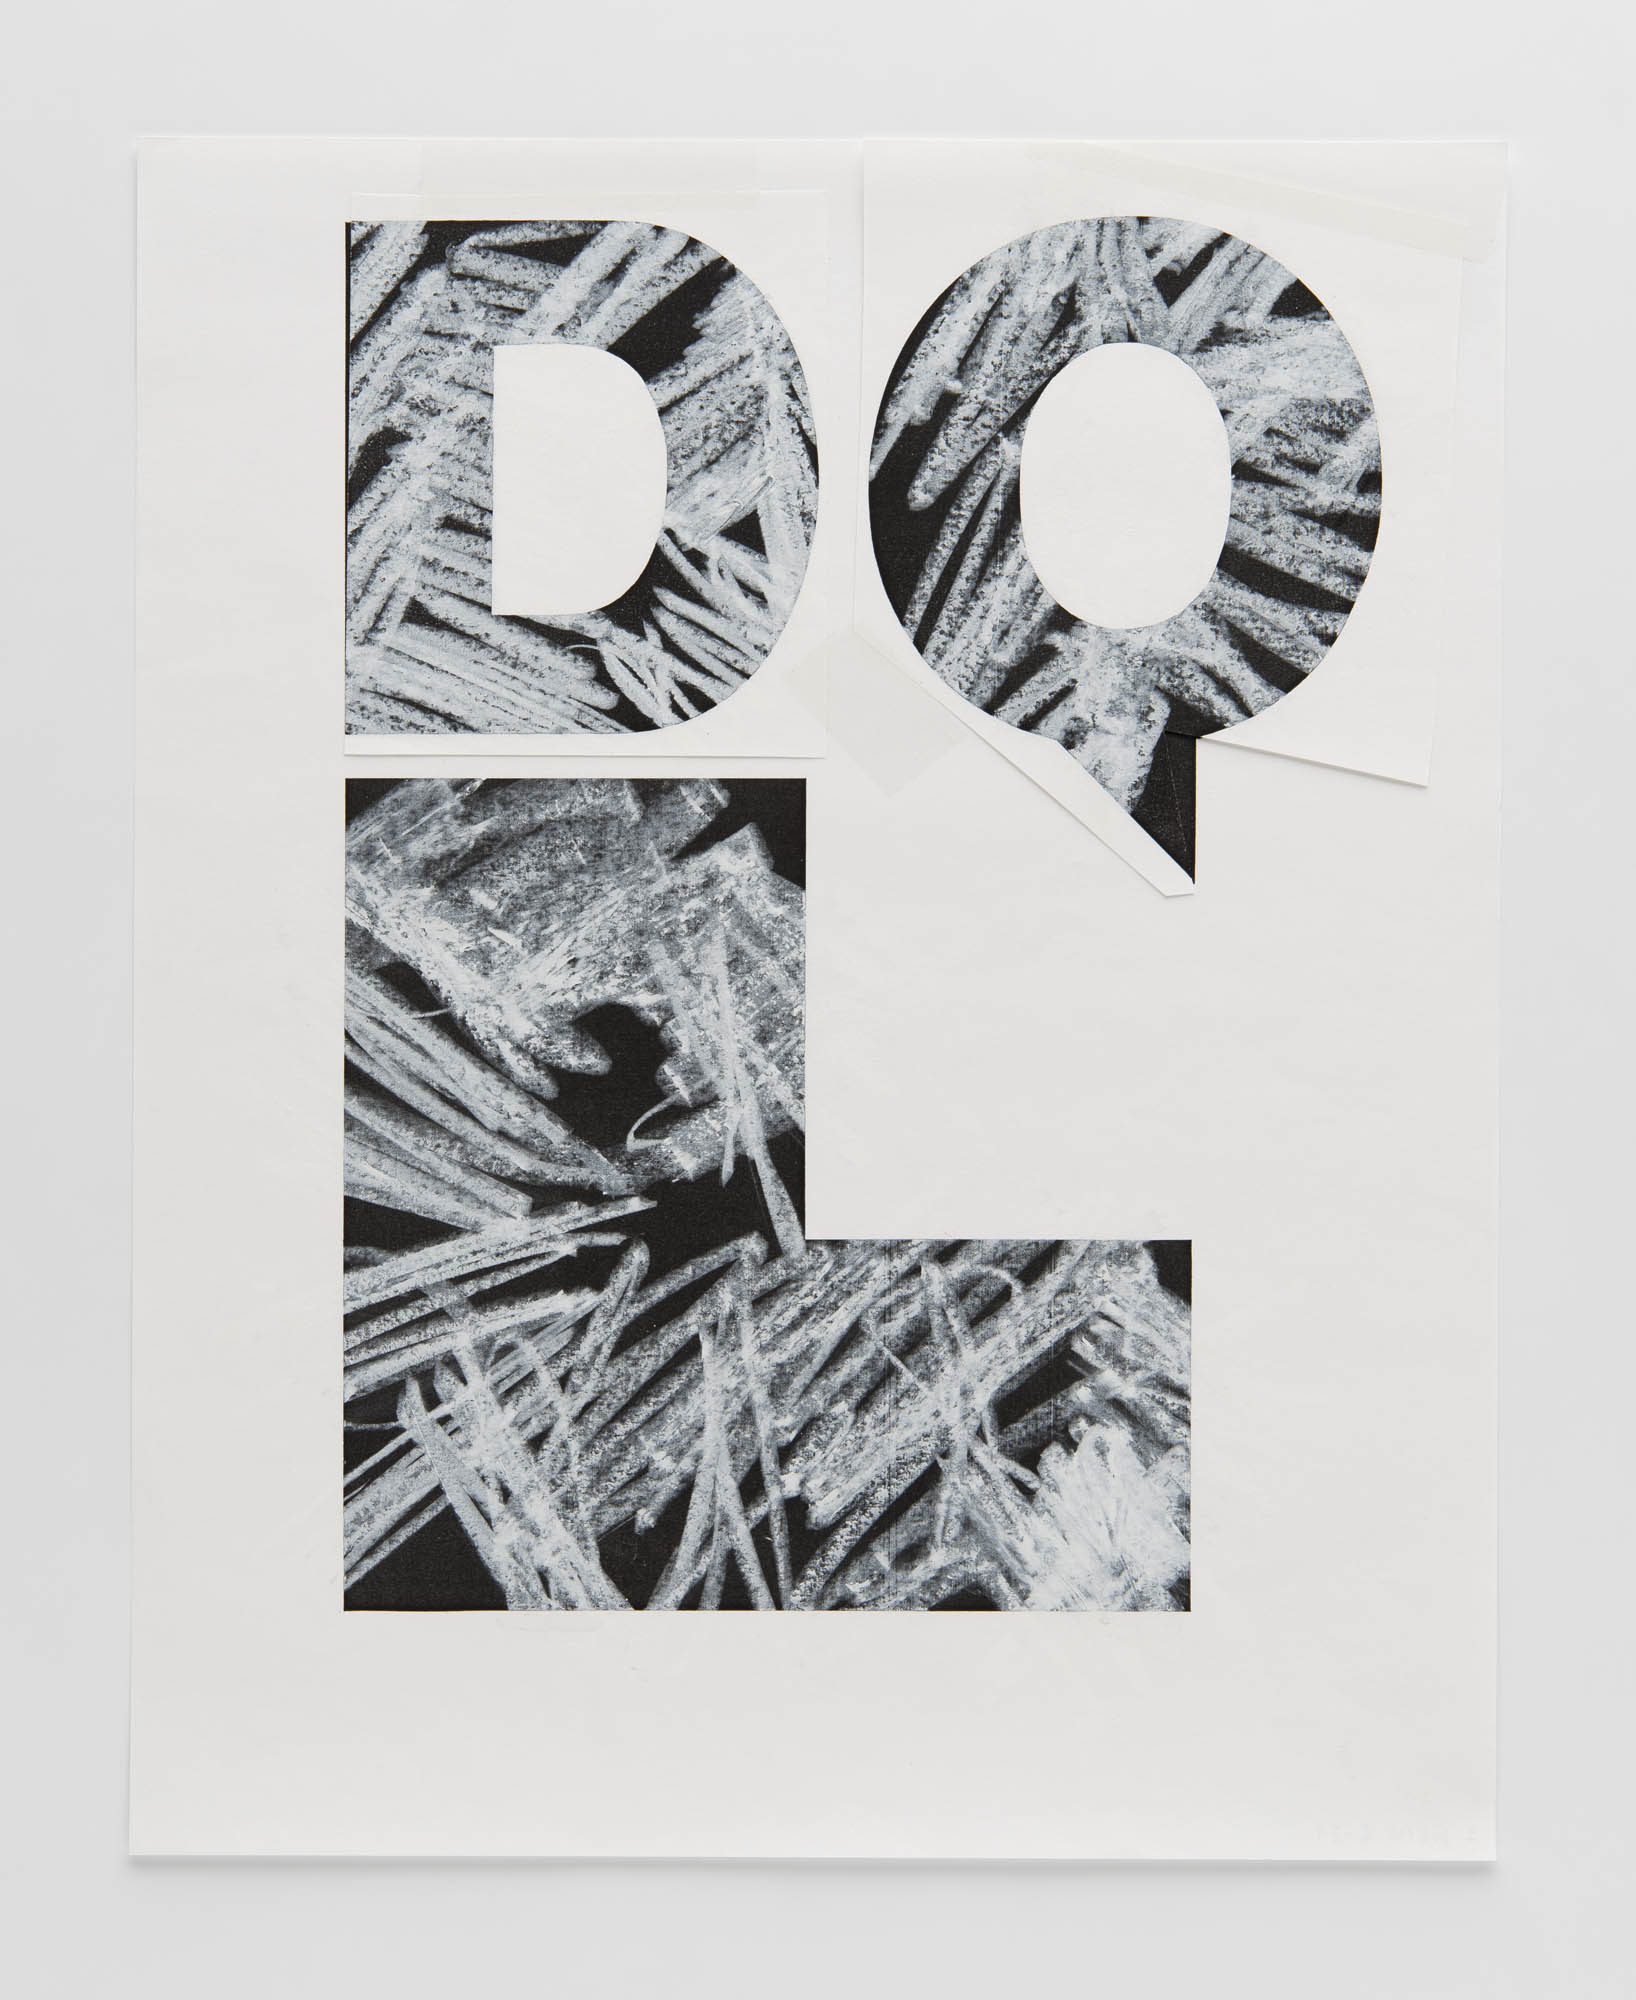 DQL – Design Quarterly: Fifty Years Wolfgang Weingart Projet final pour couverture de revue